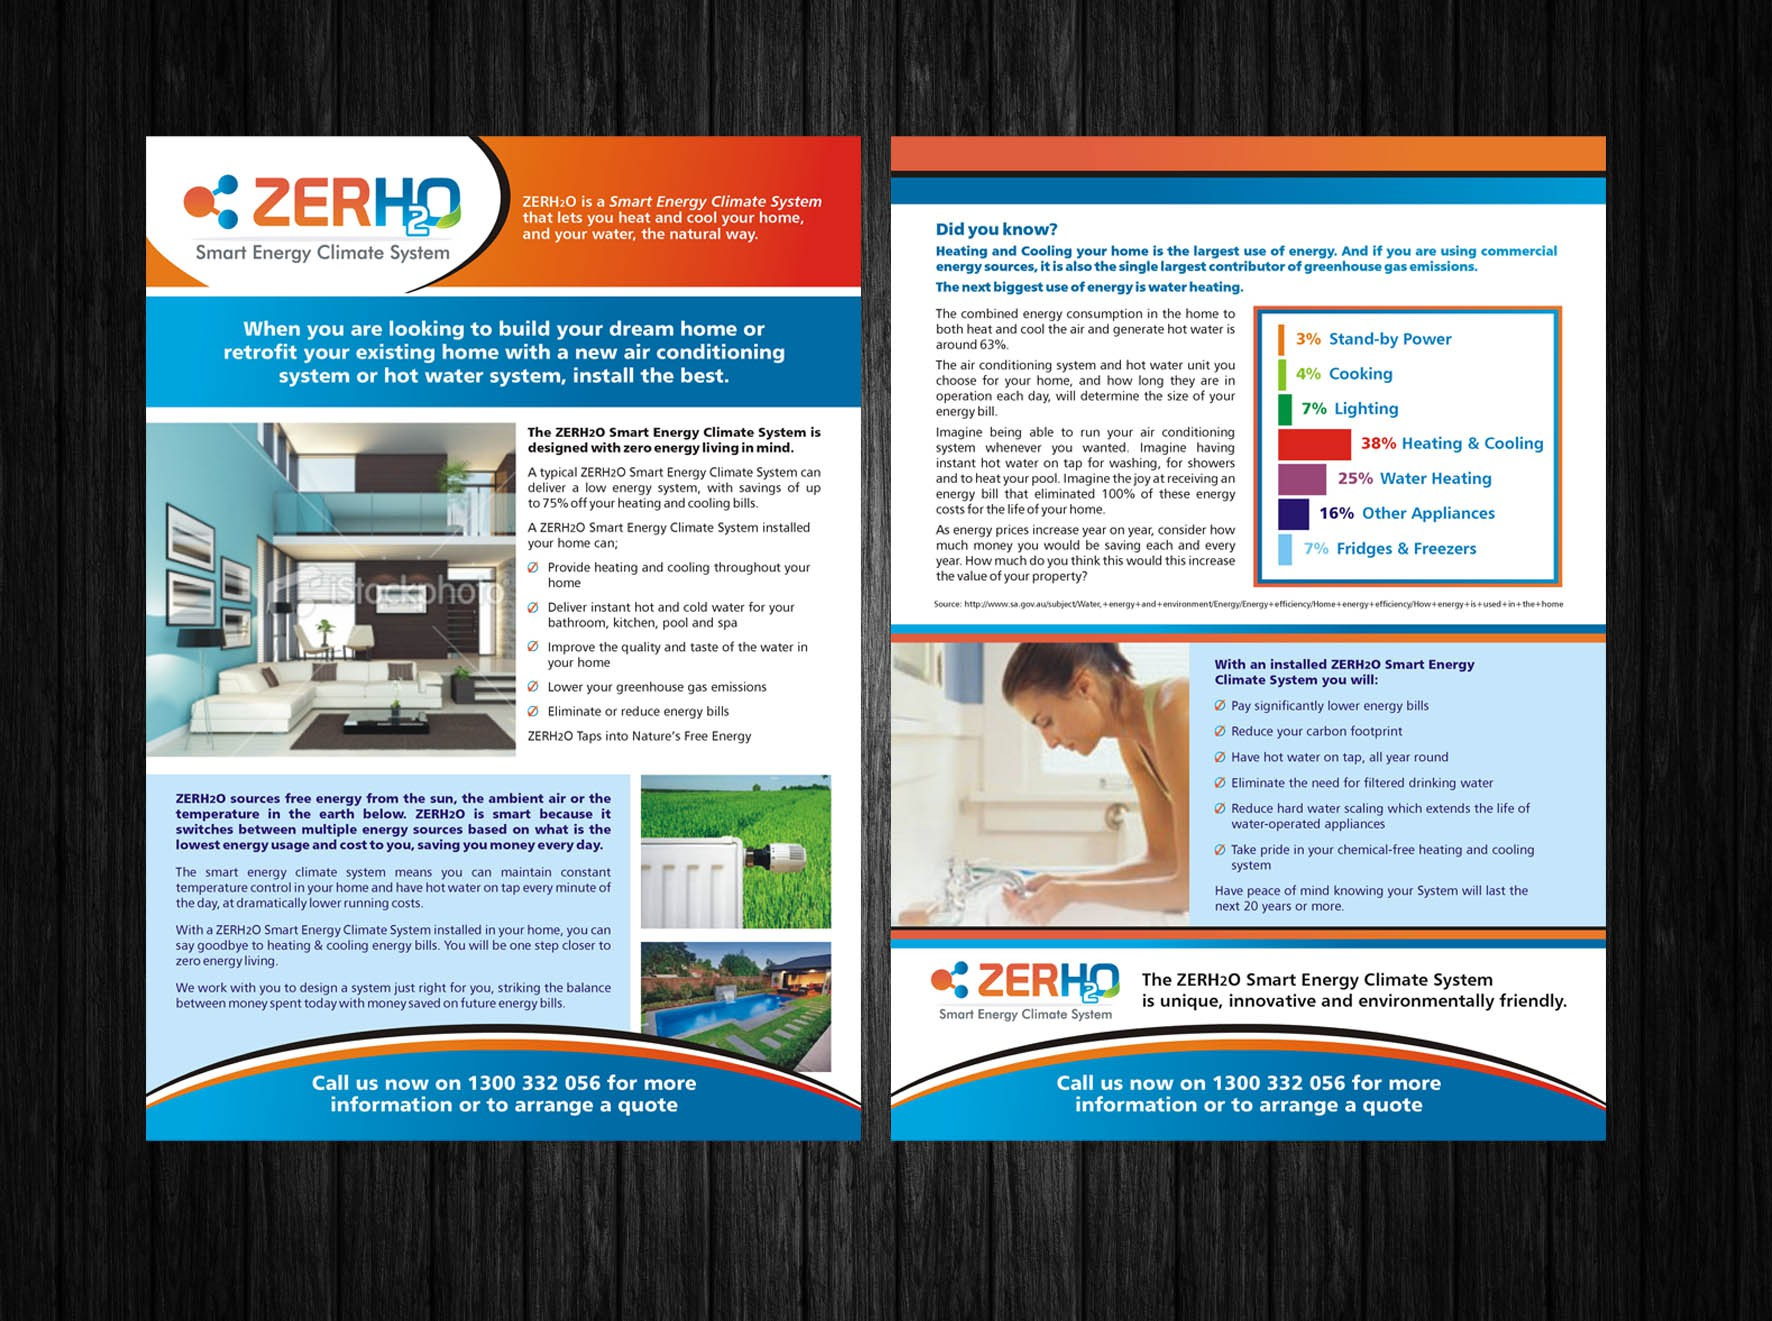 Help Zerh2o with a new postcard or flyer